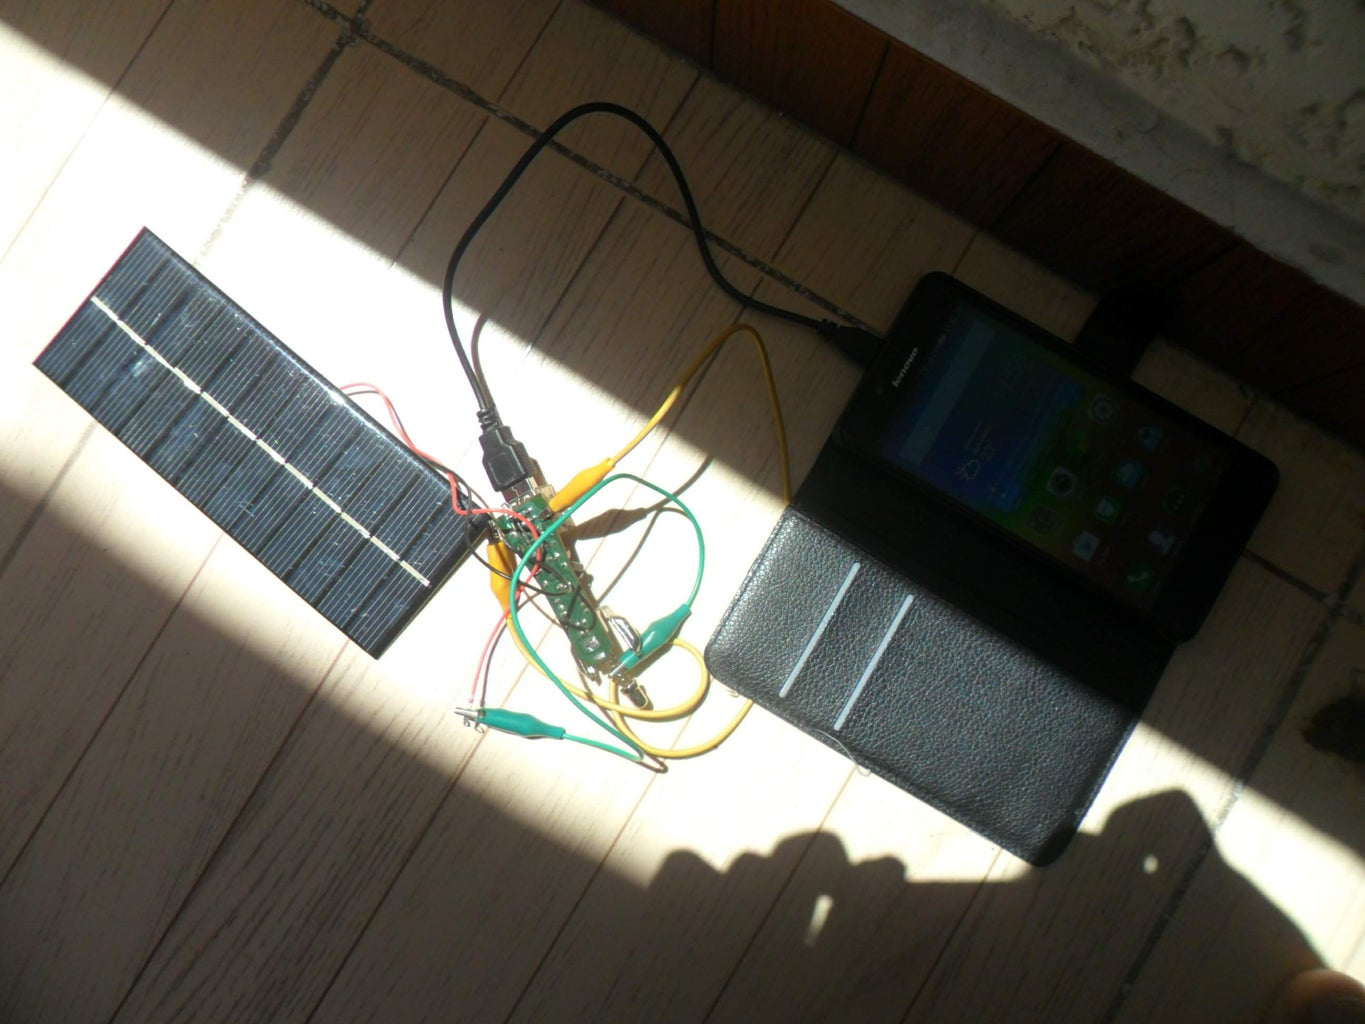 Connect and Test It in the Sun